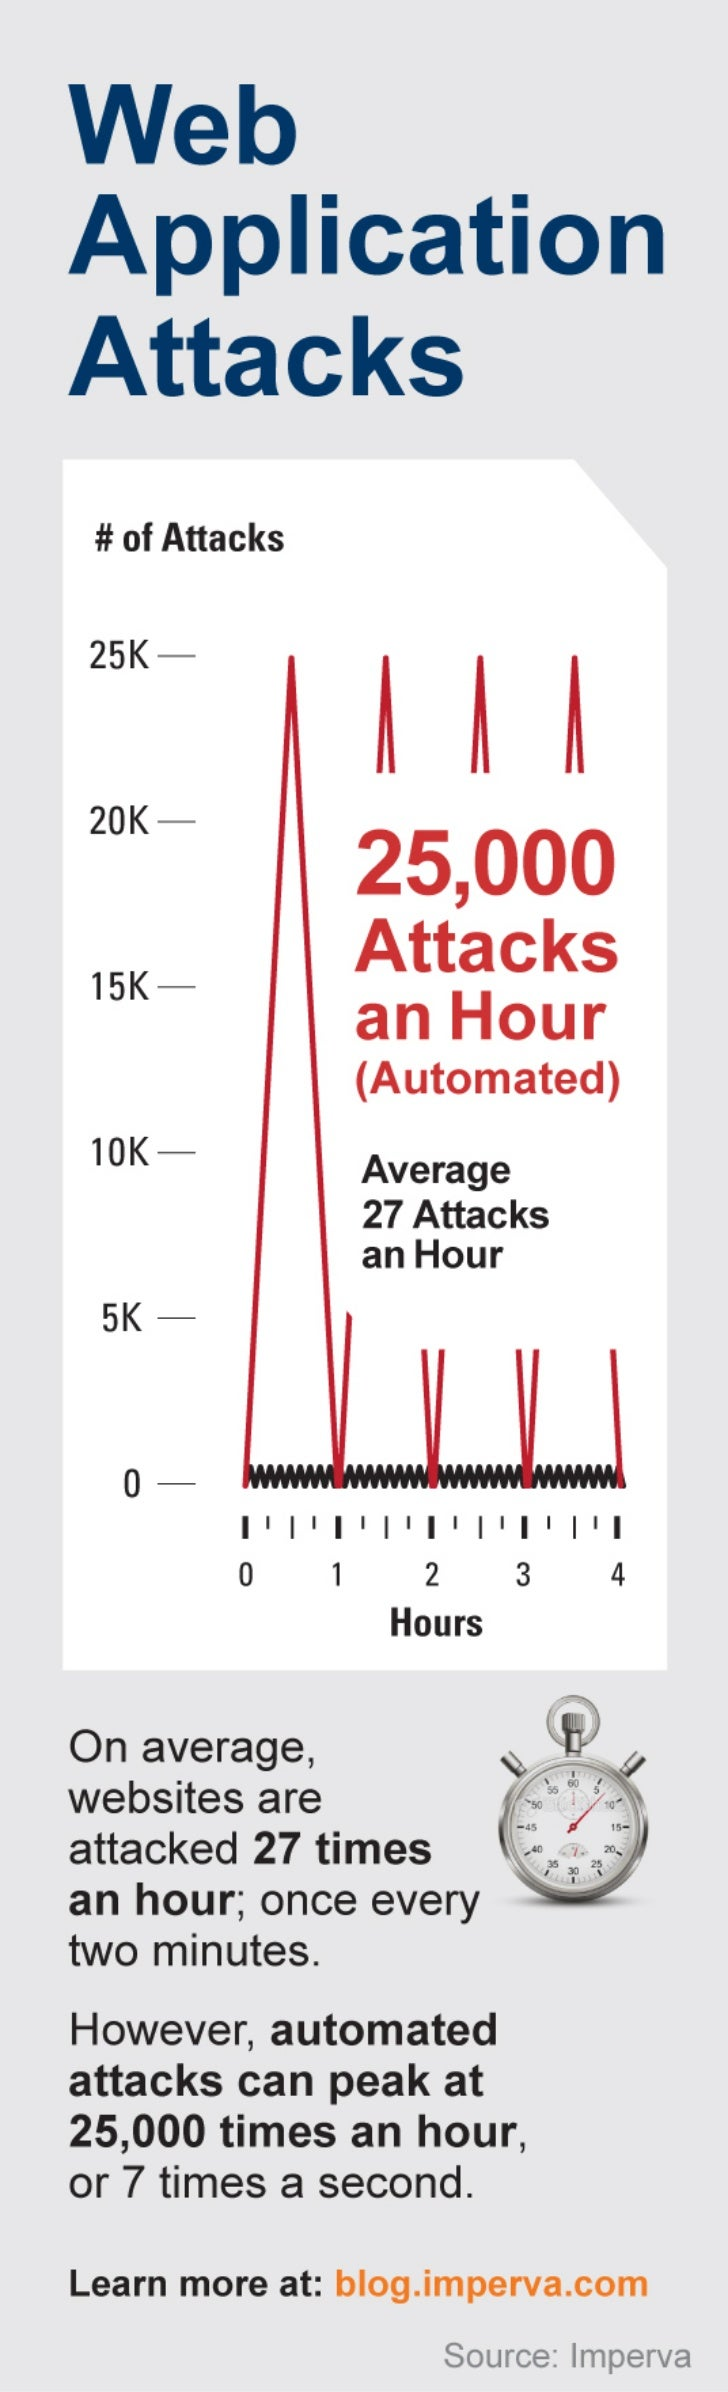 [Infographic] Web Application Attacks